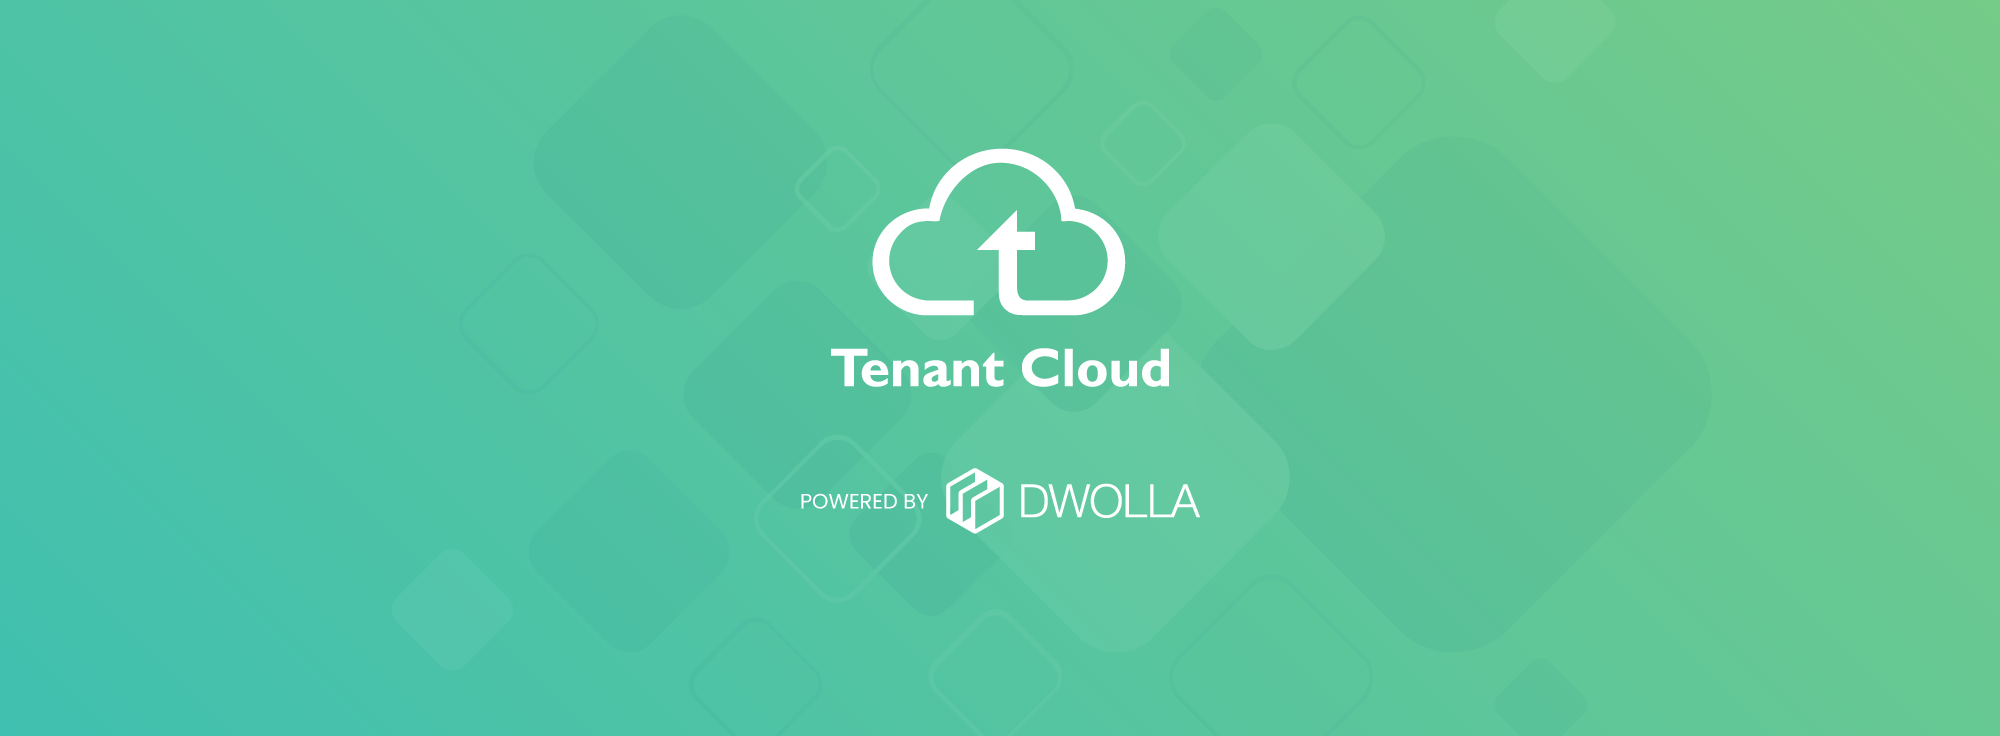 tenantcloud partnership dwolla payments image